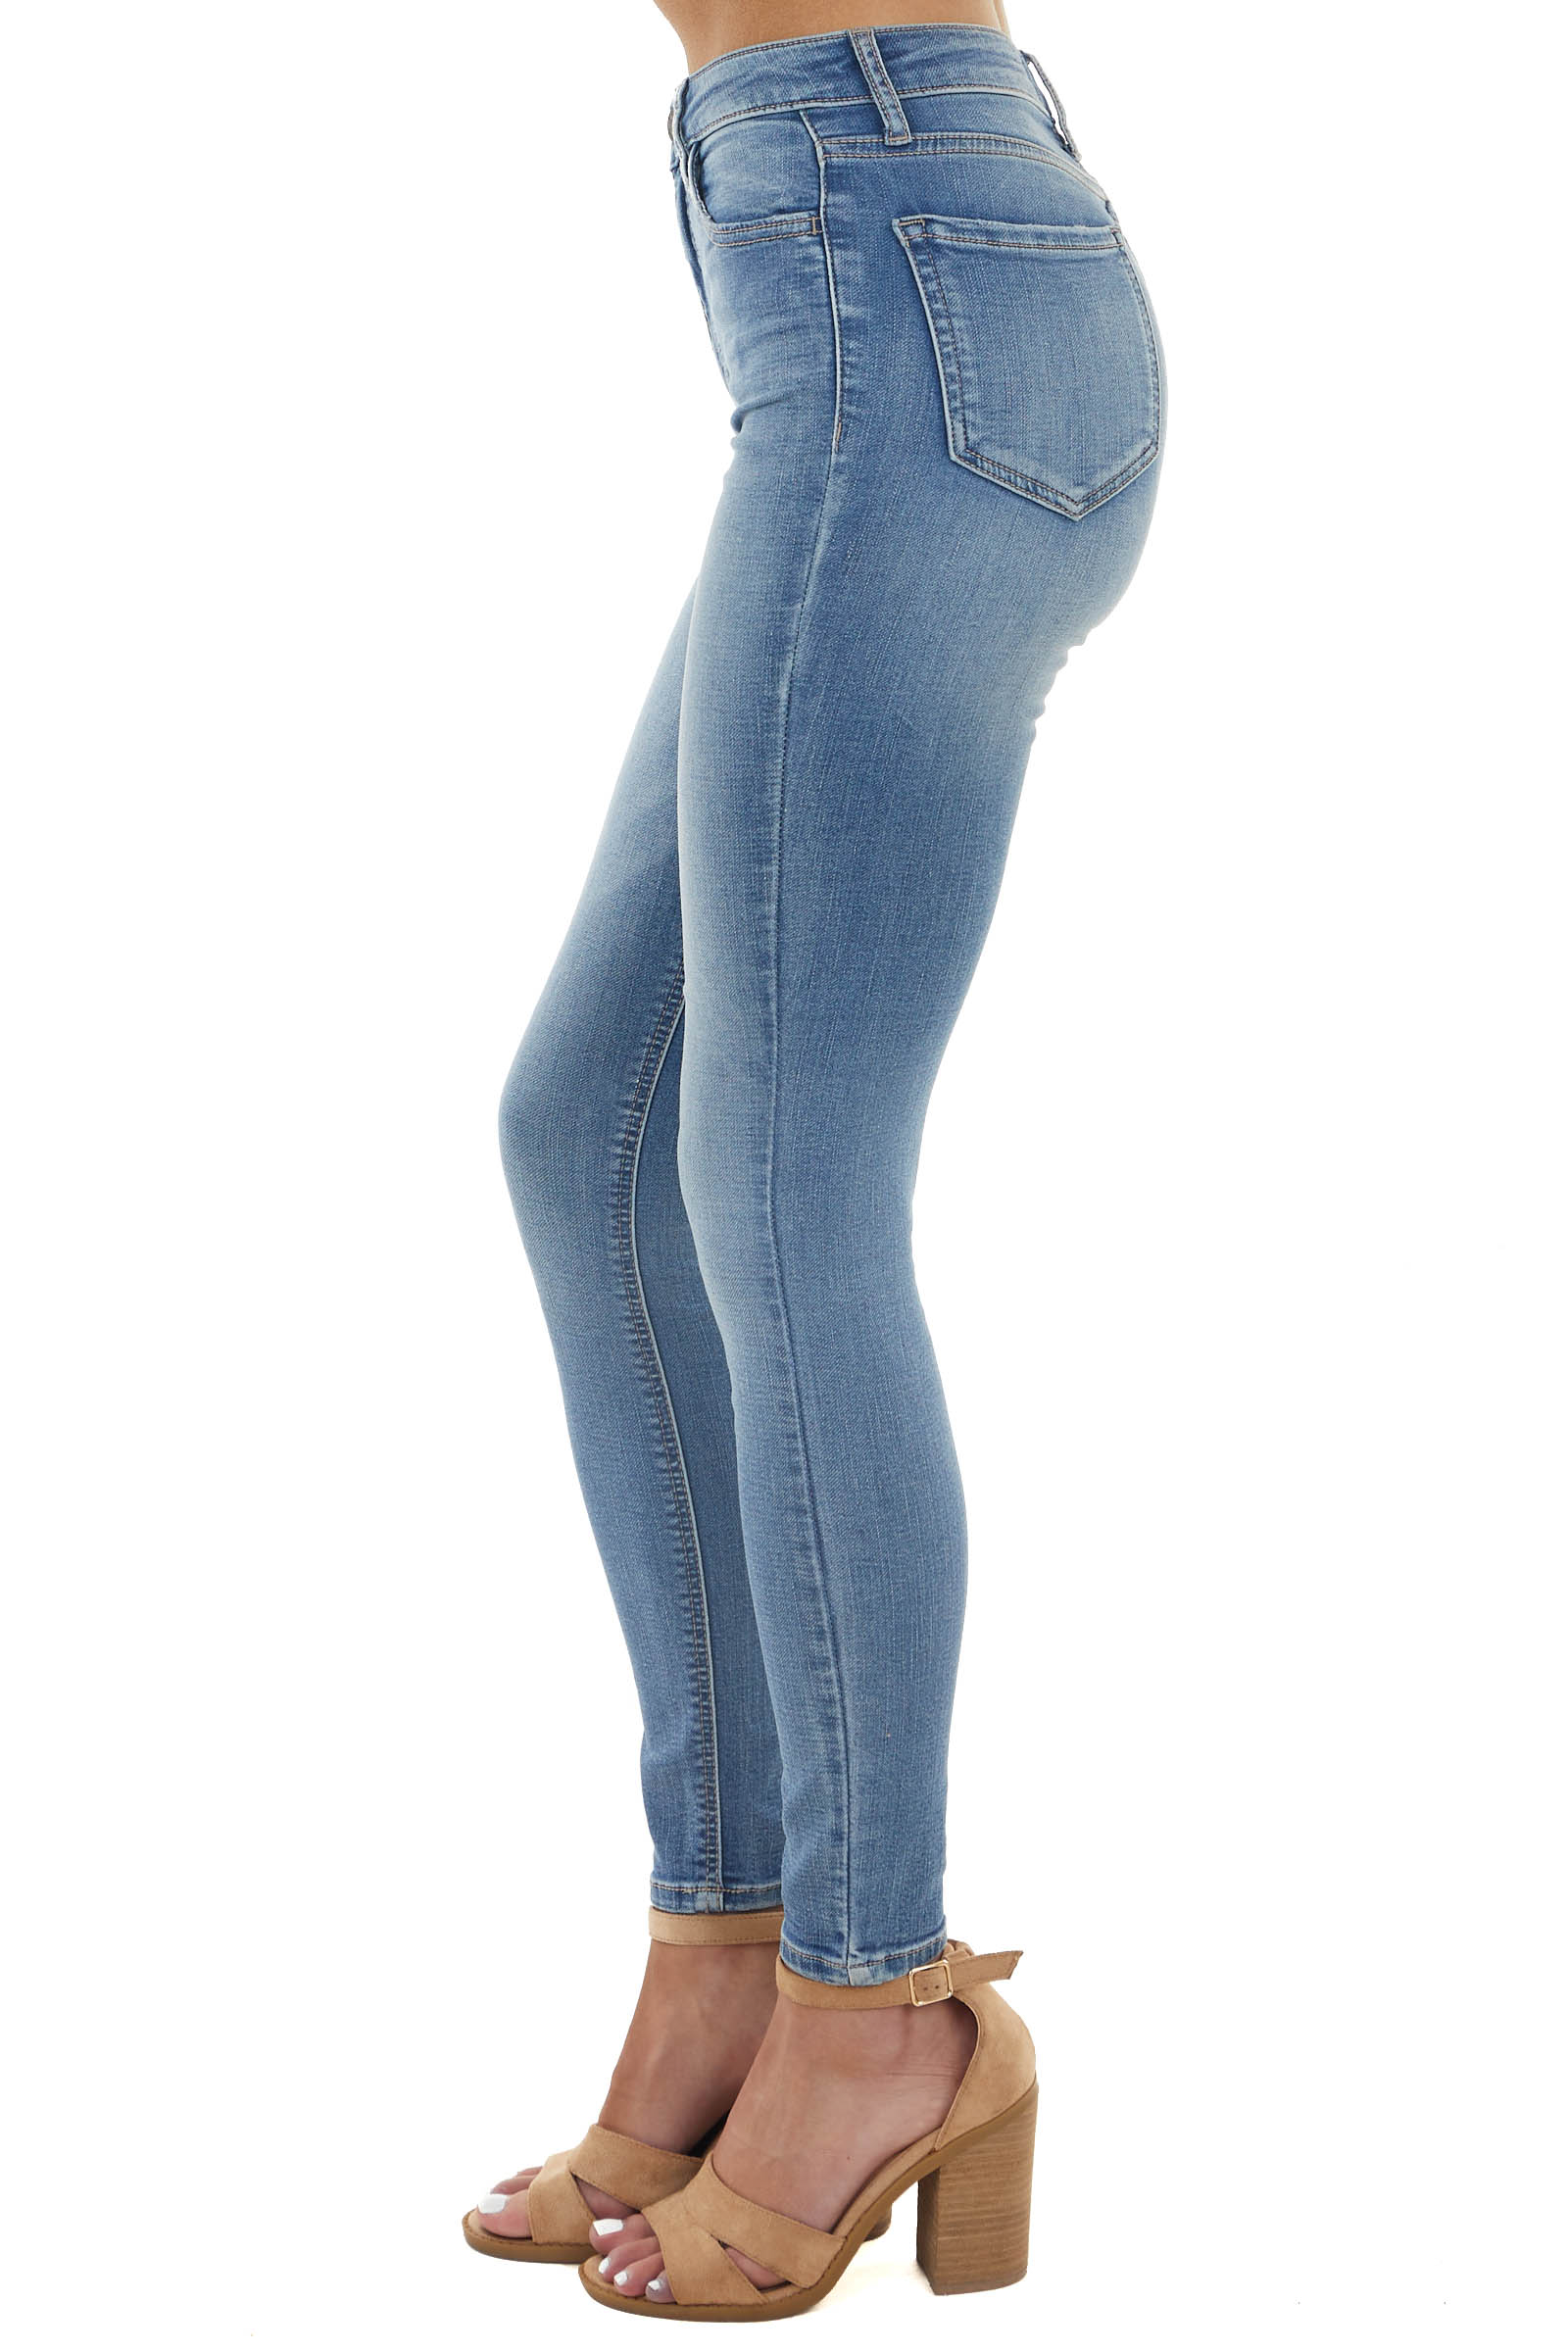 Medium Wash High Rise Skinny Fitted Stretchy Denim Jeans